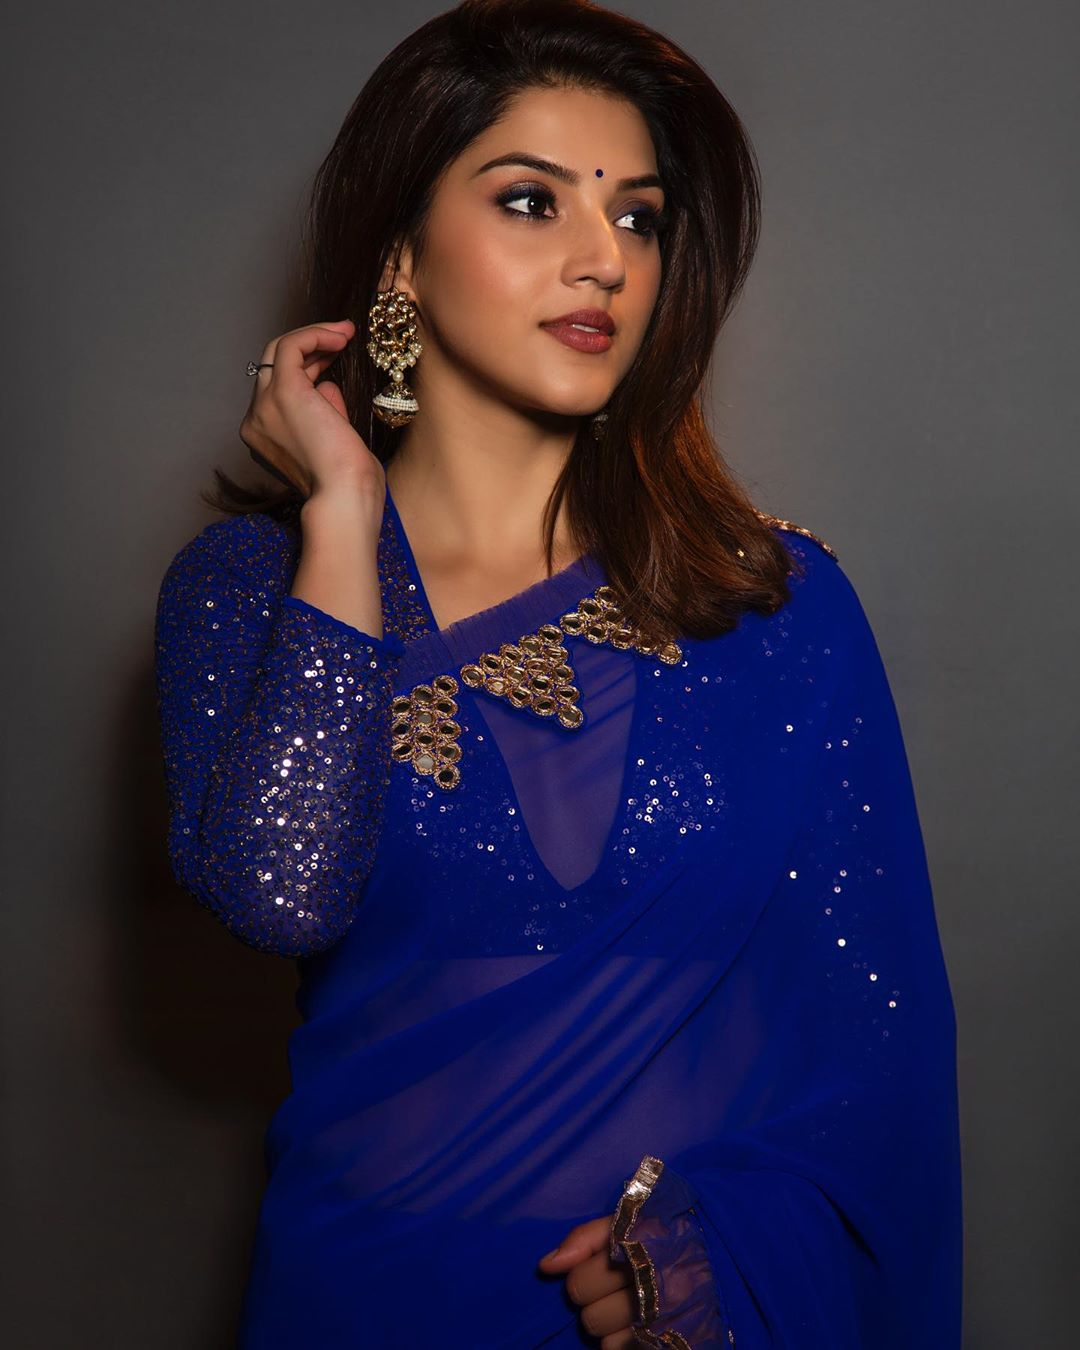 Charming And Lovely Mehreen Pirzadaa – Traditional Outfit Latest Photo Shoot-Mehreen New Images Photos